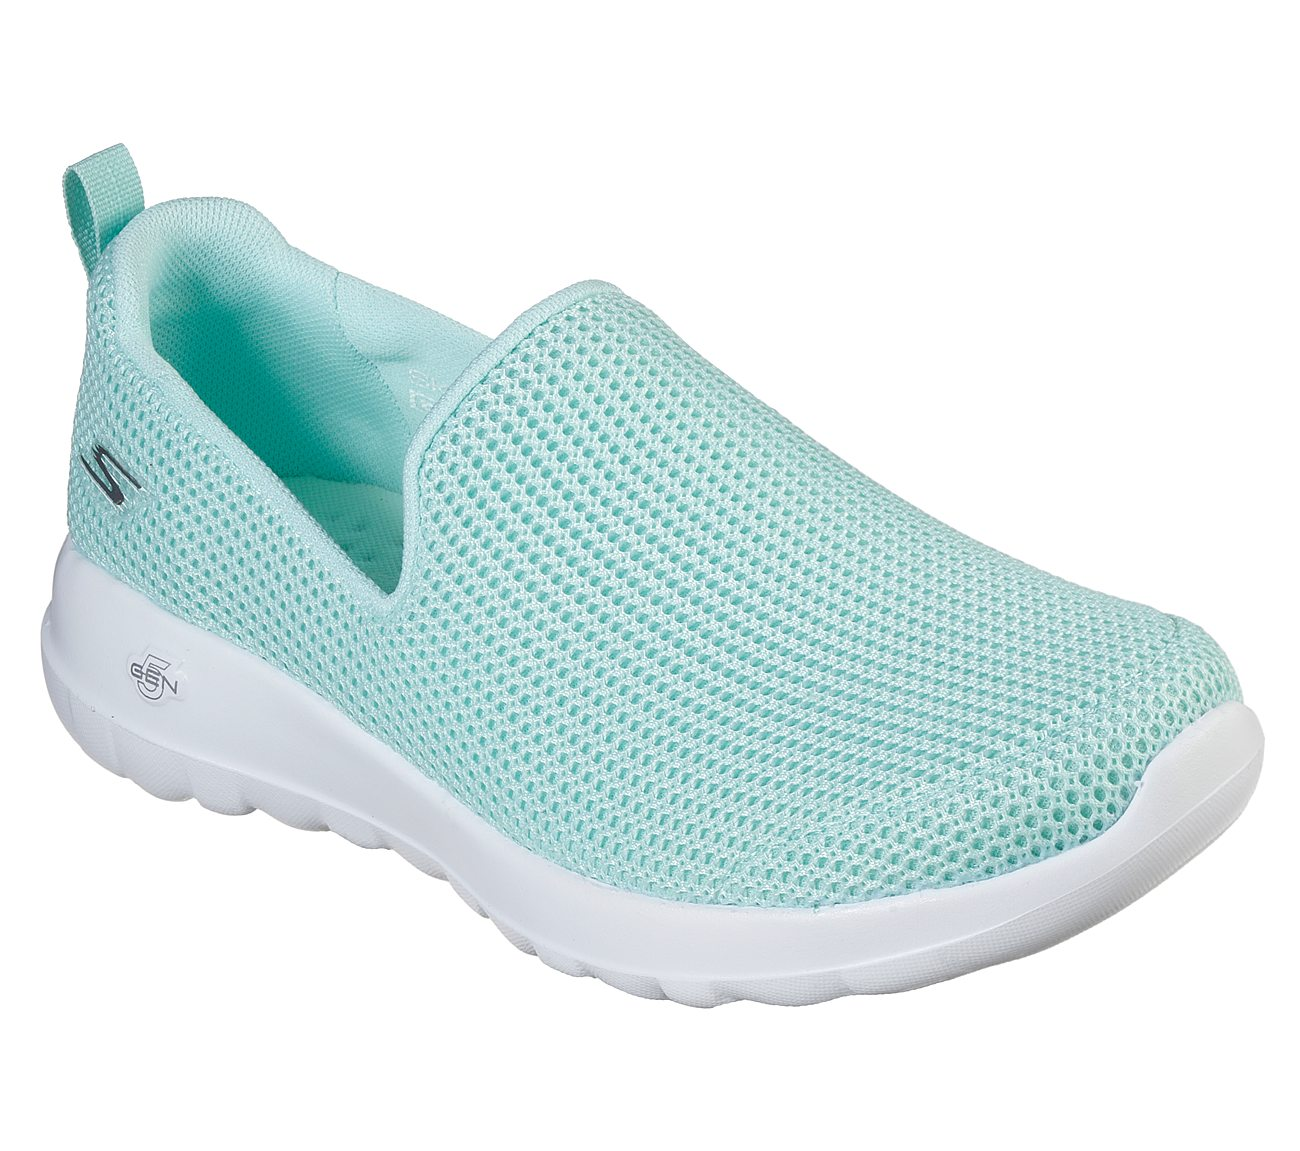 SKECHERS GOWALK JOY - CENTERPIECE